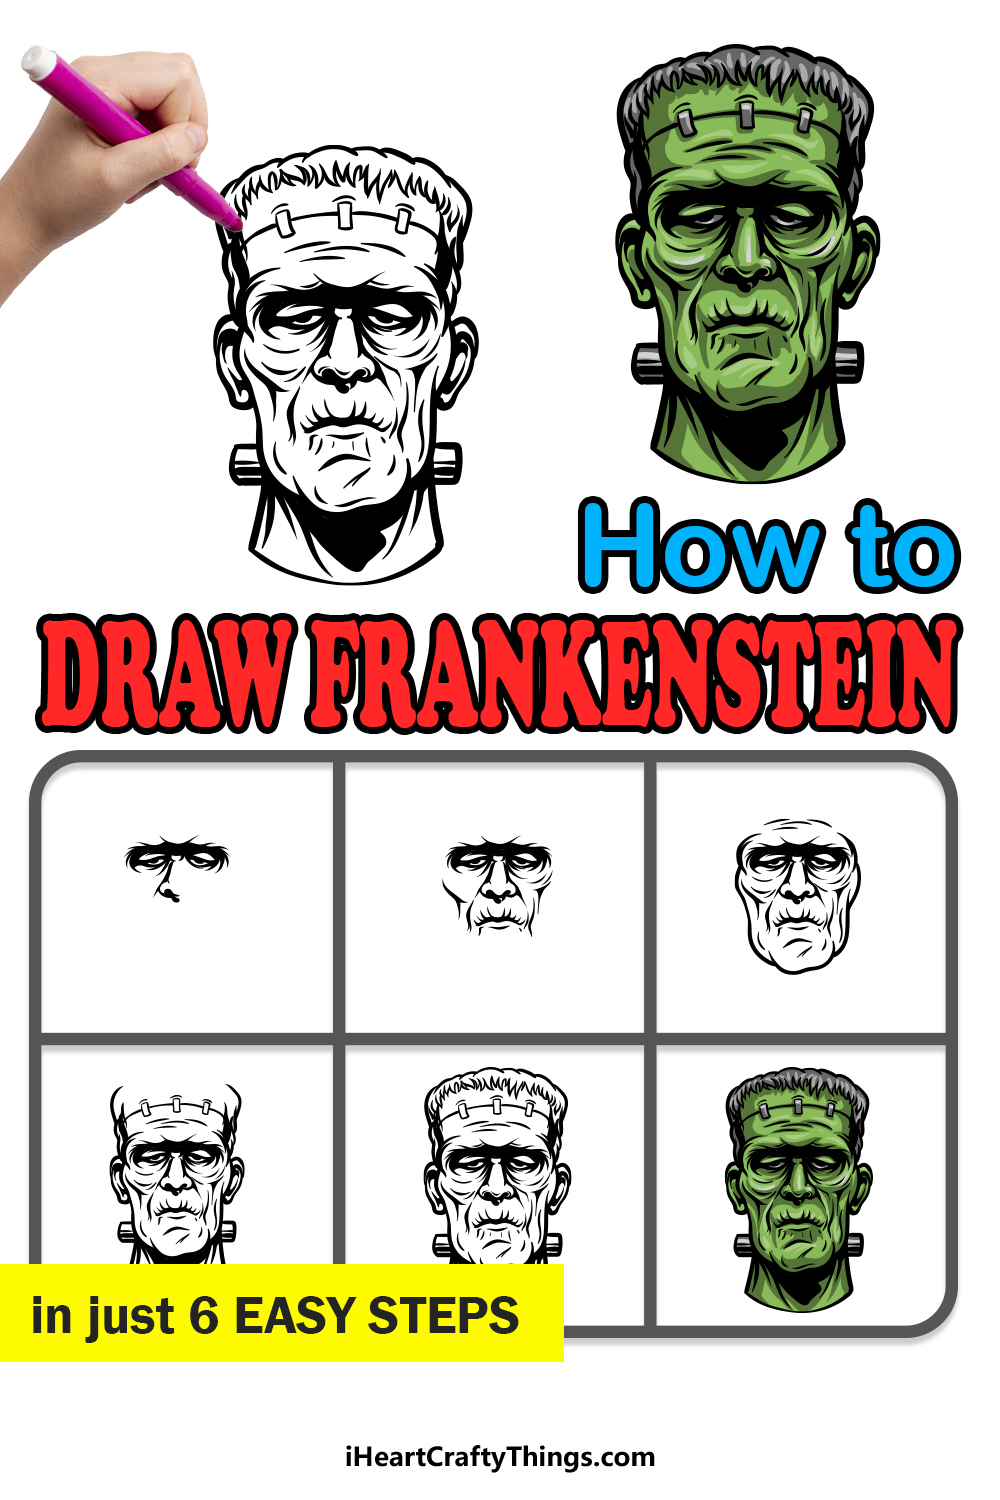 how to Draw Frankenstein in 6 easy steps